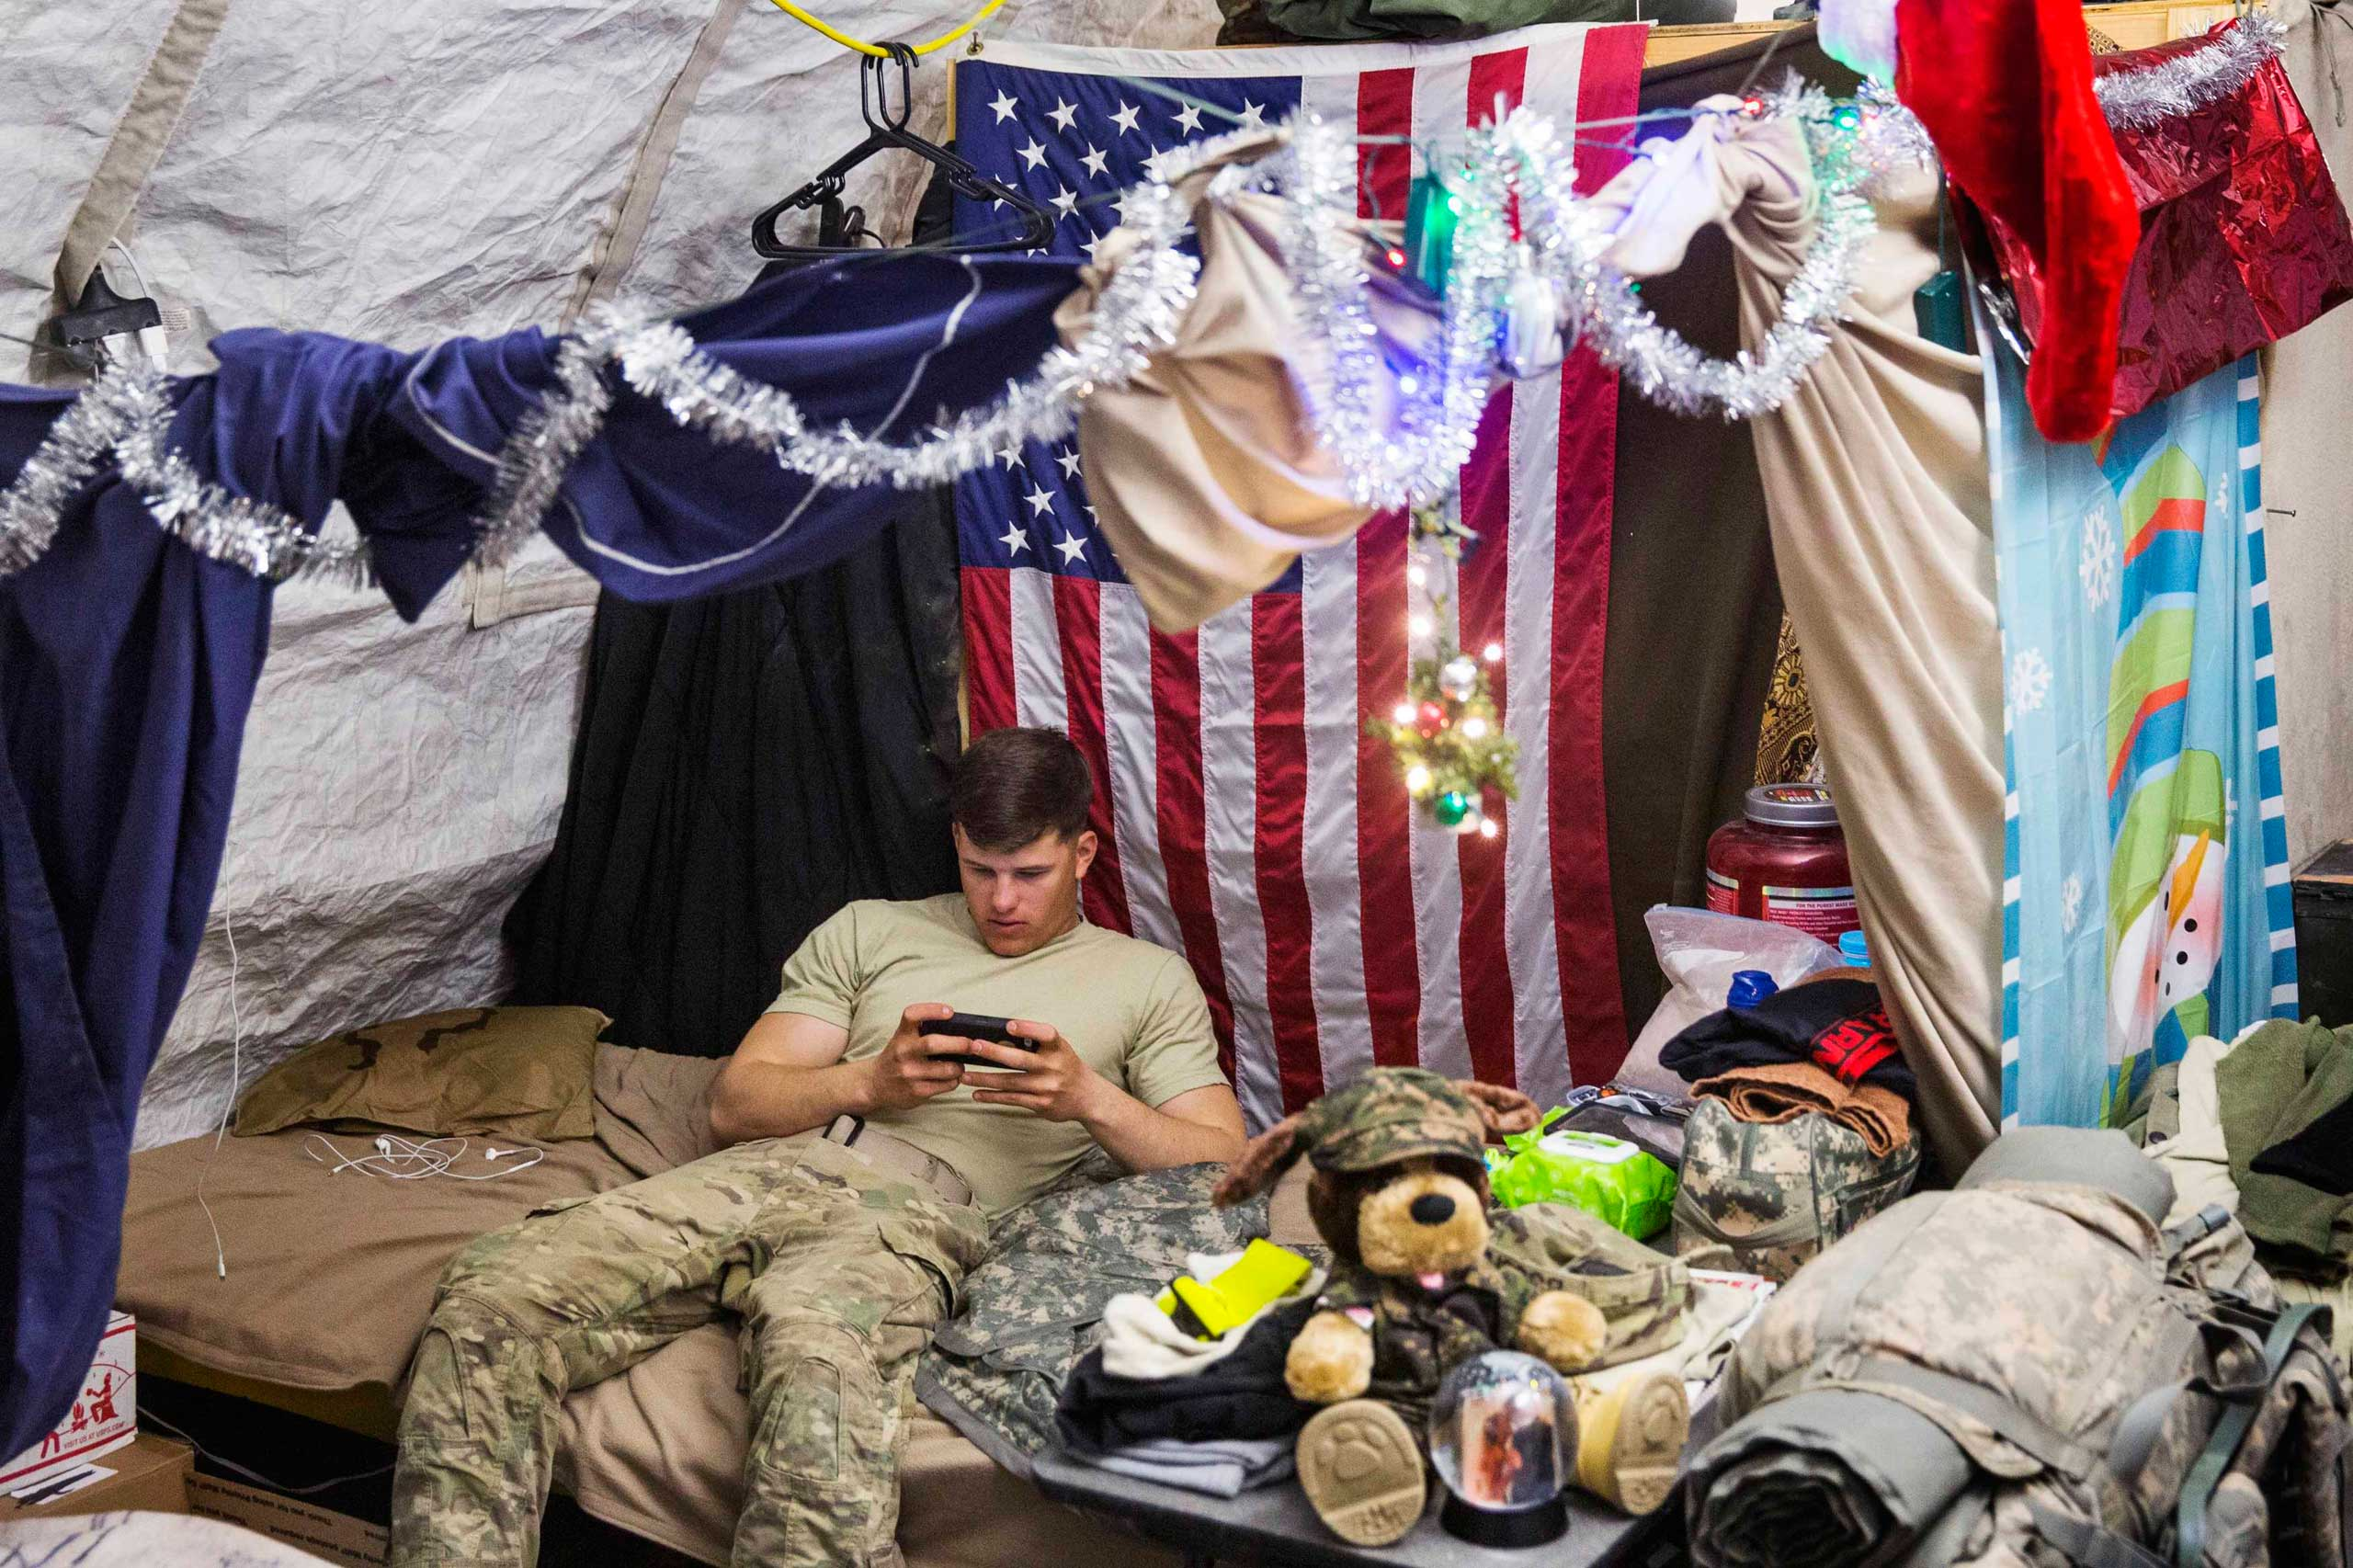 A U.S. soldier from the 3rd Cavalry Regiment relaxes in his quarters after taking part in a mortar exercise on forward operating base Gamberi in the Laghman province of Afghanistan on Dec. 24, 2014.